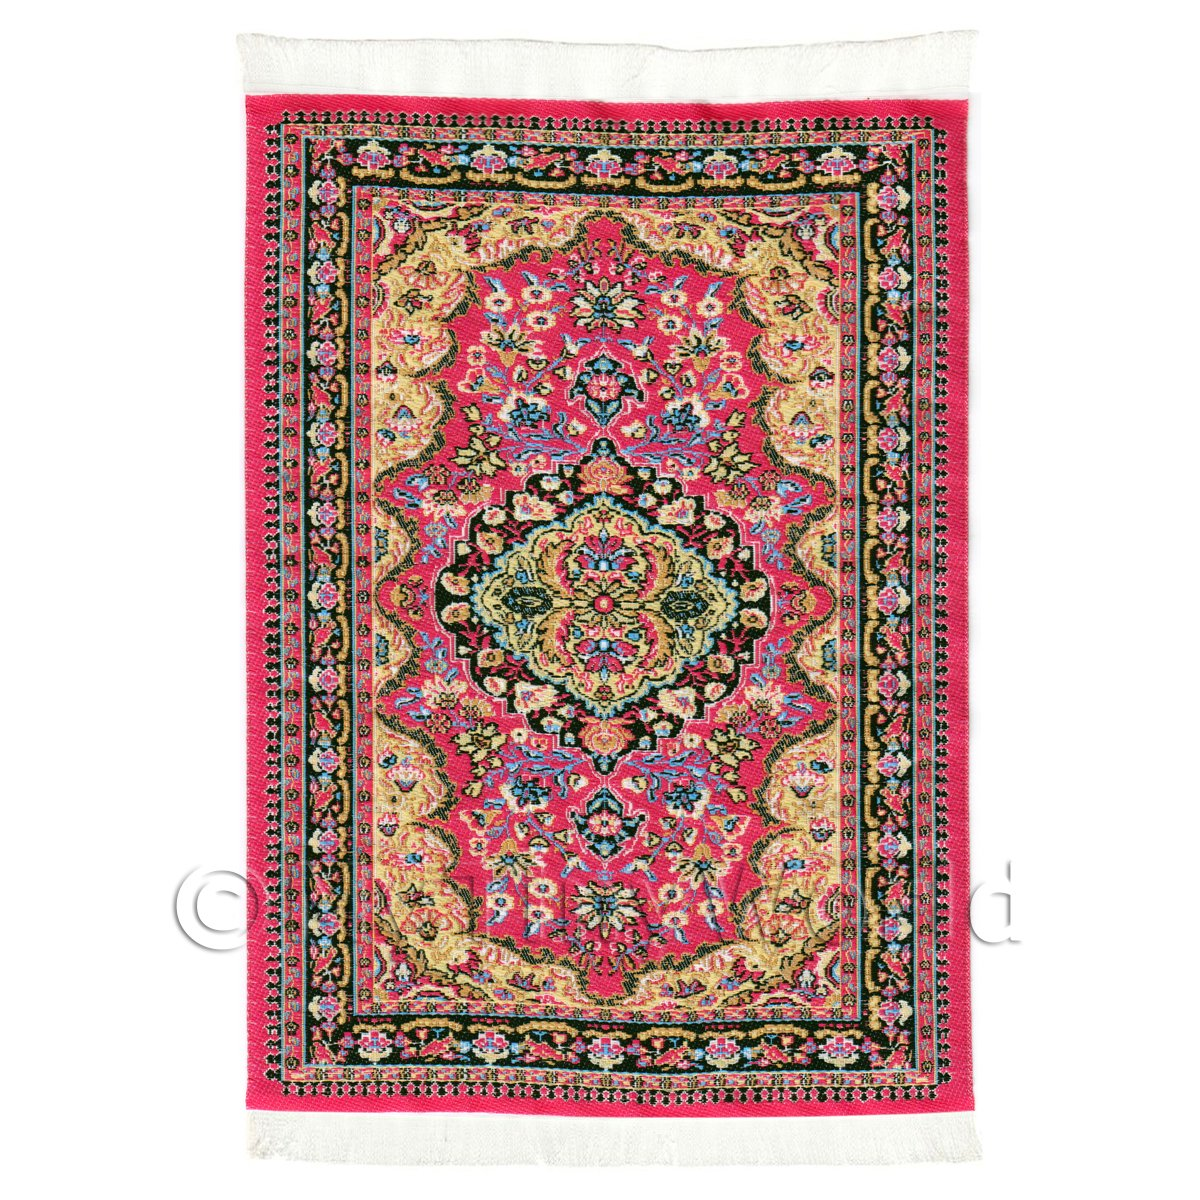 Dolls House Medium 16th Century Rectangular Carpet / Rug (16NMR04)